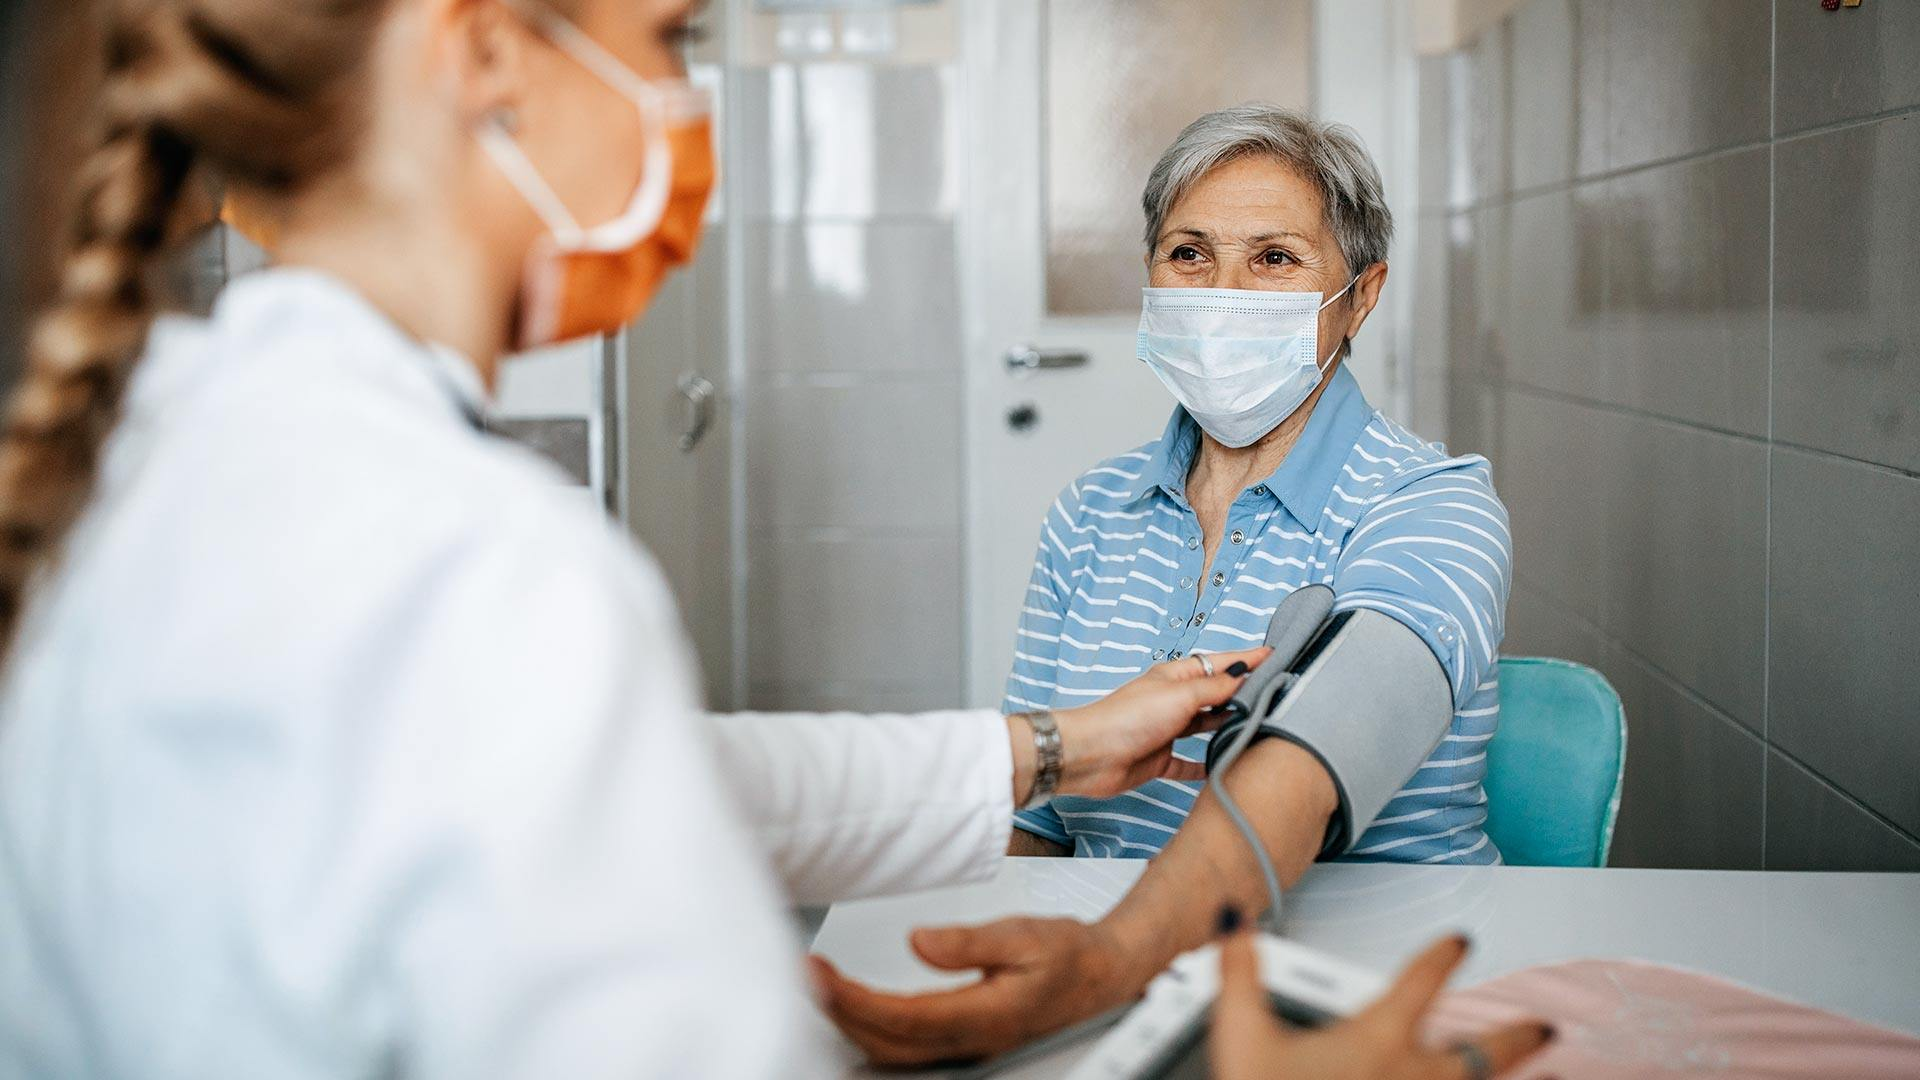 Annual Exams Can Keep You Out of the ER